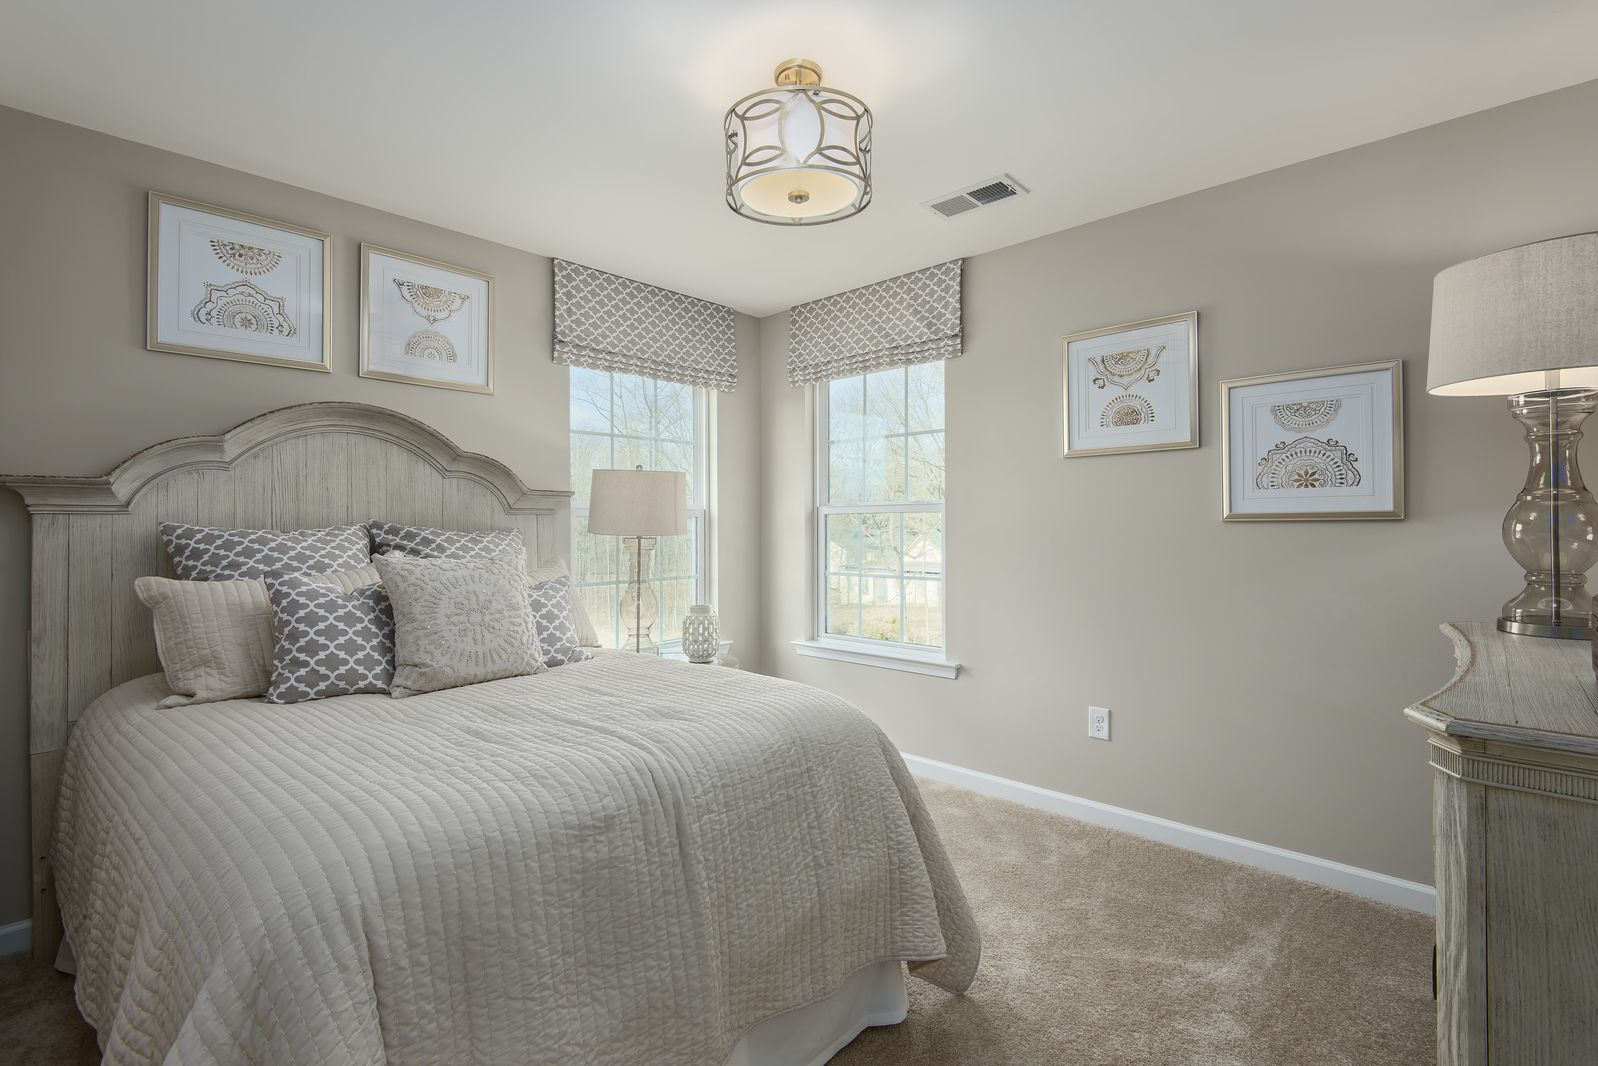 Bedroom featured in the Sienna By Ryan Homes in Ocean City, MD